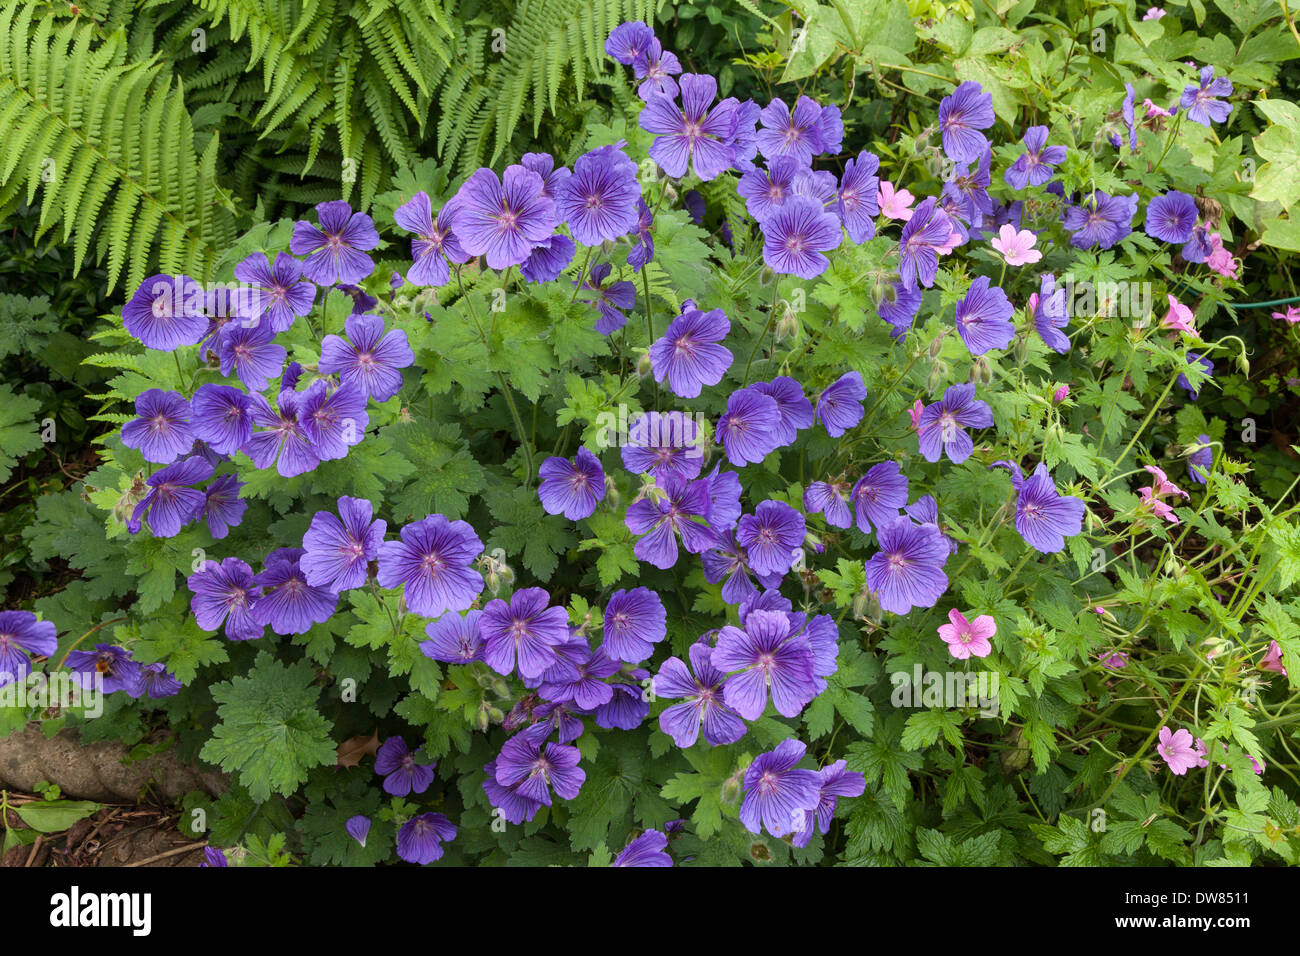 BLUE GERANIUM IN FLOWER BED IN DOMESTIC GARDEN WITH PINK GERANIUM AND ERN. GLOUCESTERSHIRE ENGLAND UK - Stock Image